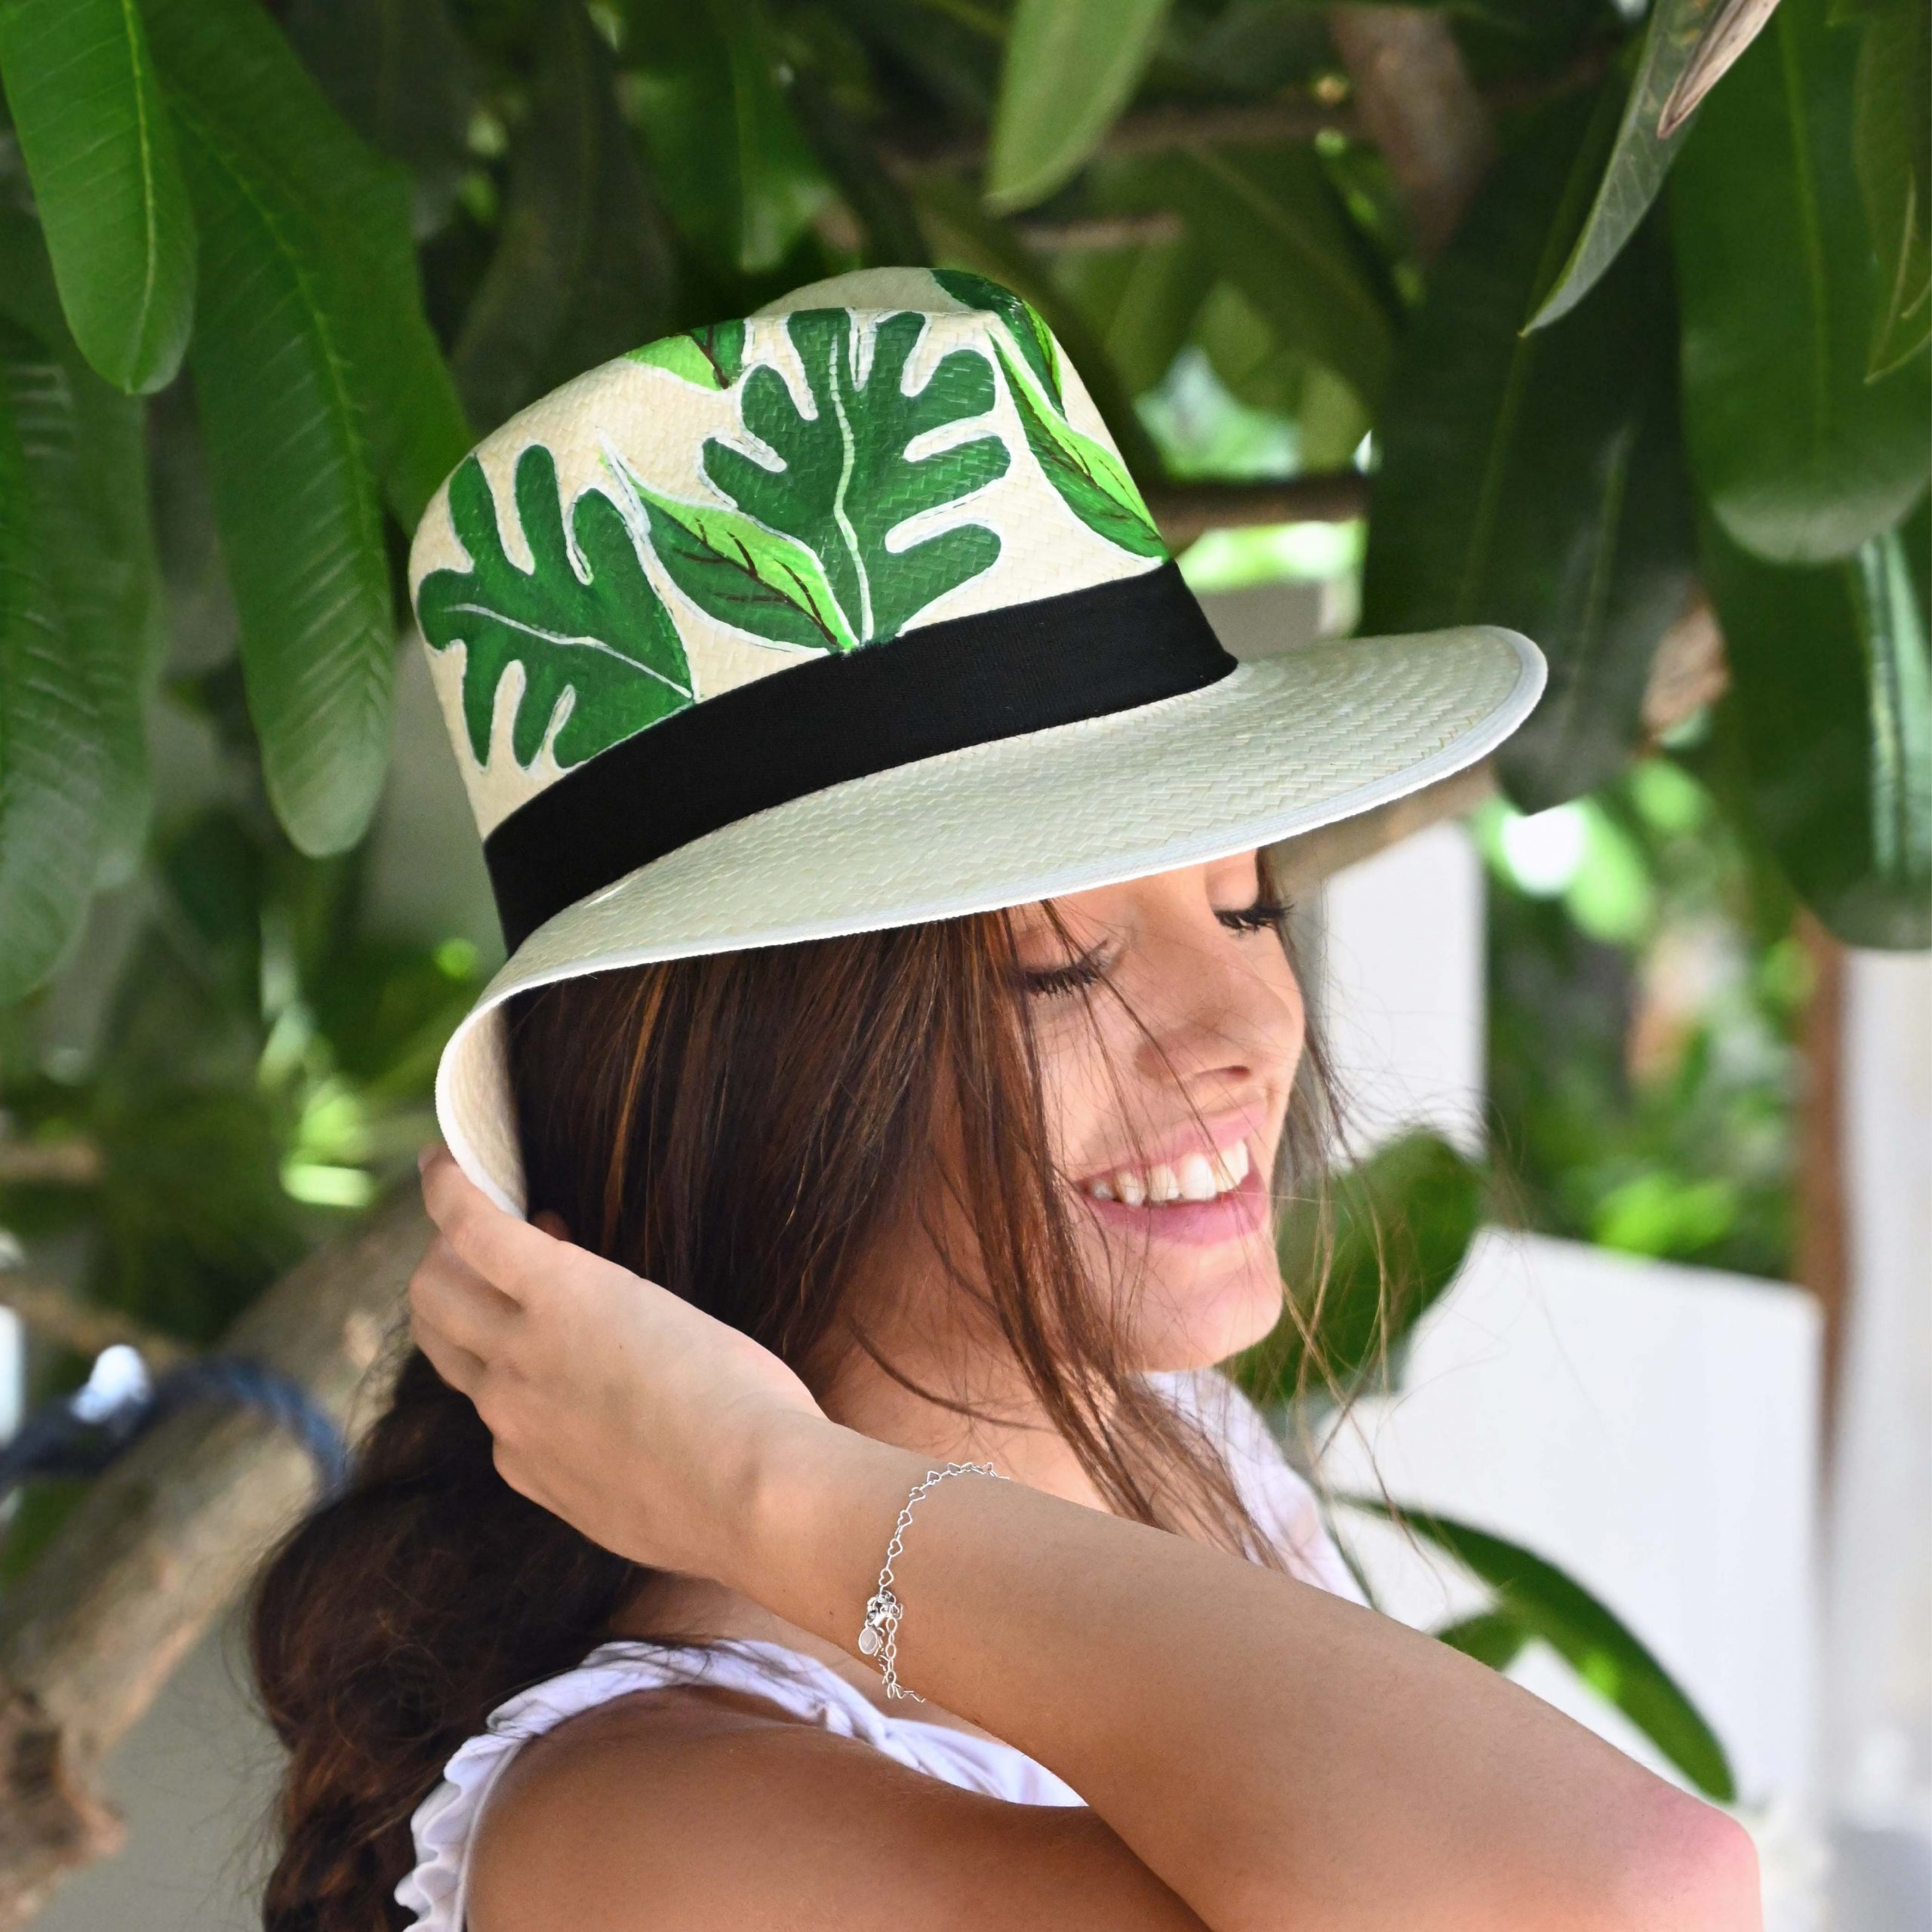 Beachin' in style with Colombianas: Not only a hat but wearable art for your head